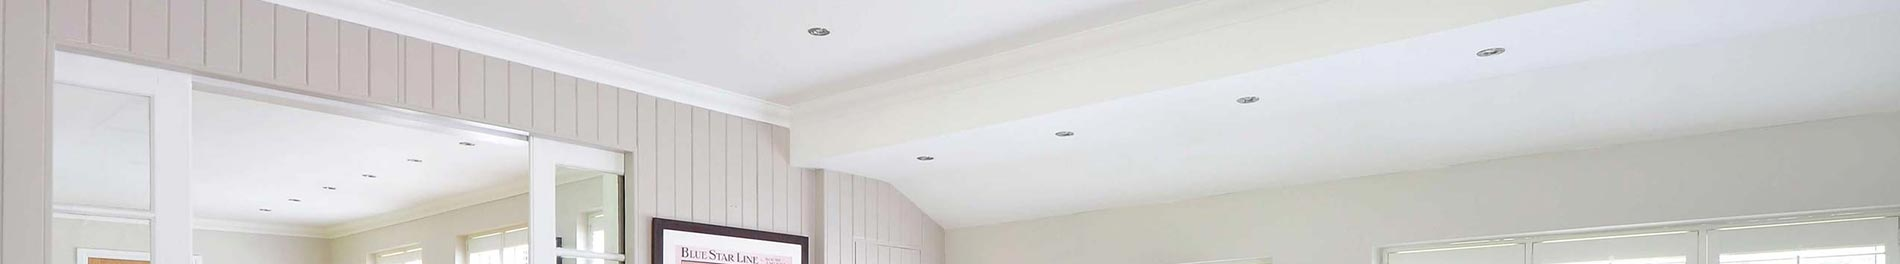 Squareset And Cornice Plastering Services Canberra Canberra Plasterer